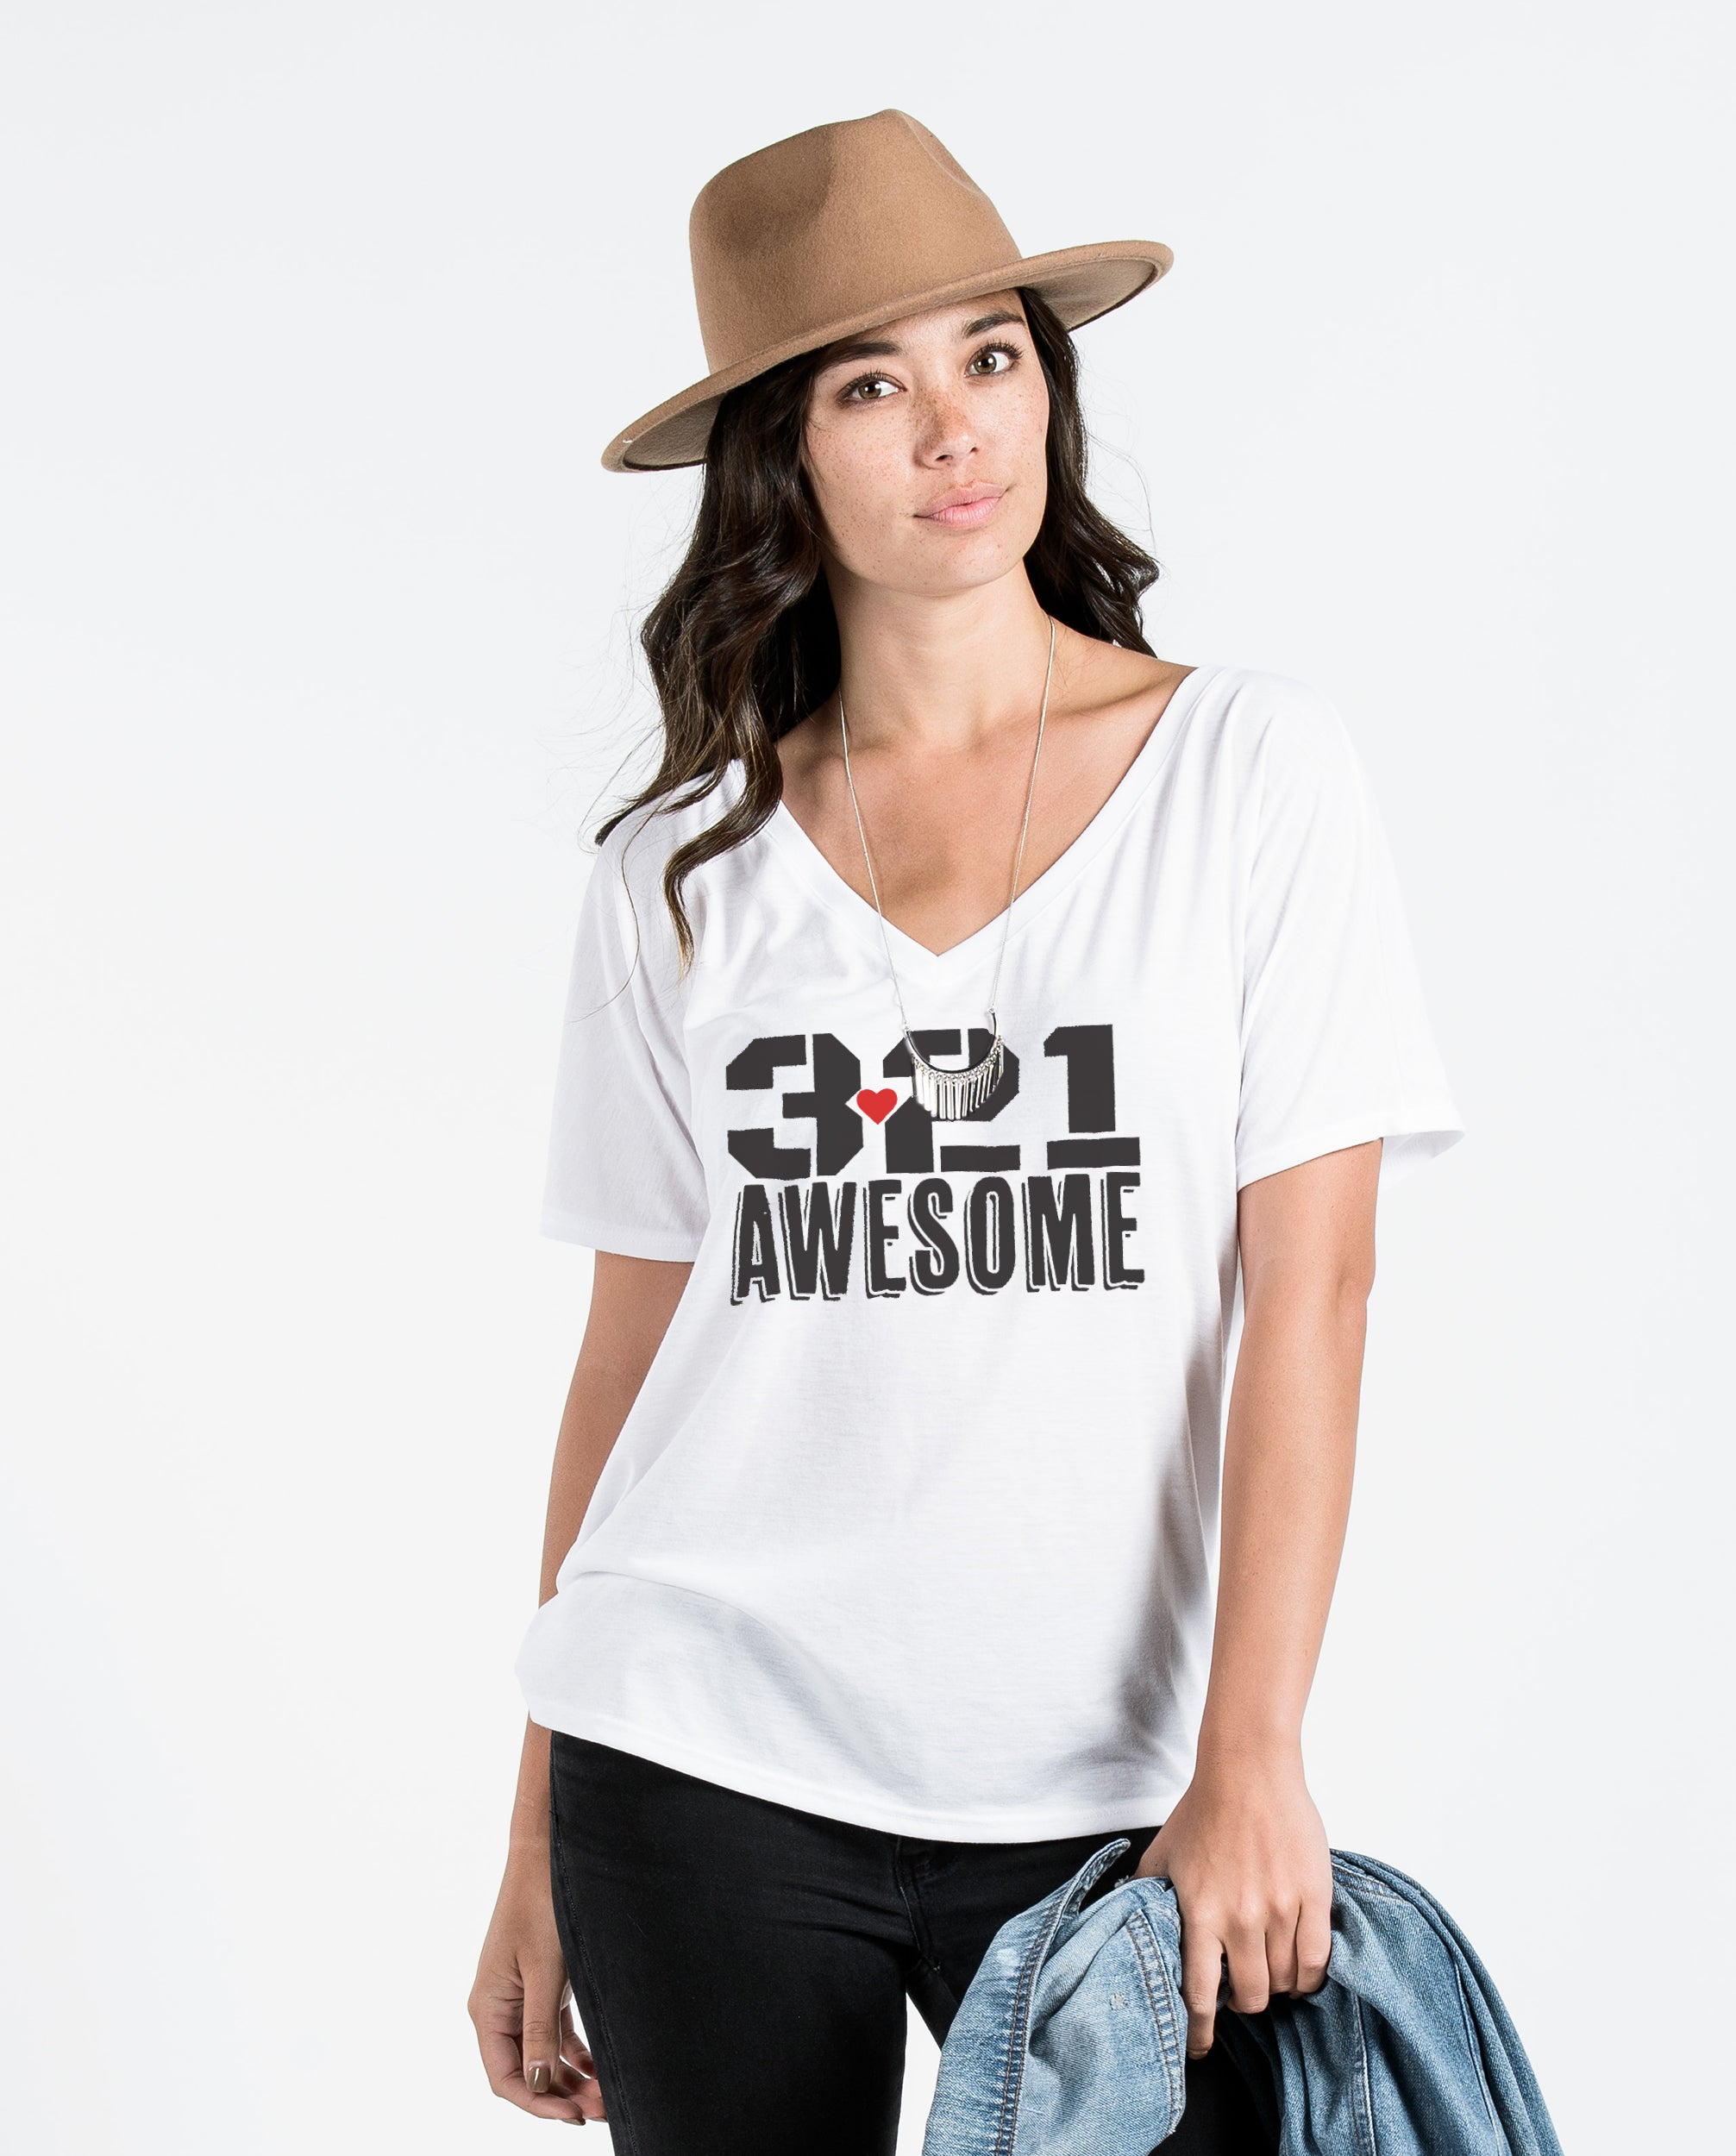 3.21 AWESOME - WOMENS FLOWY V Neck